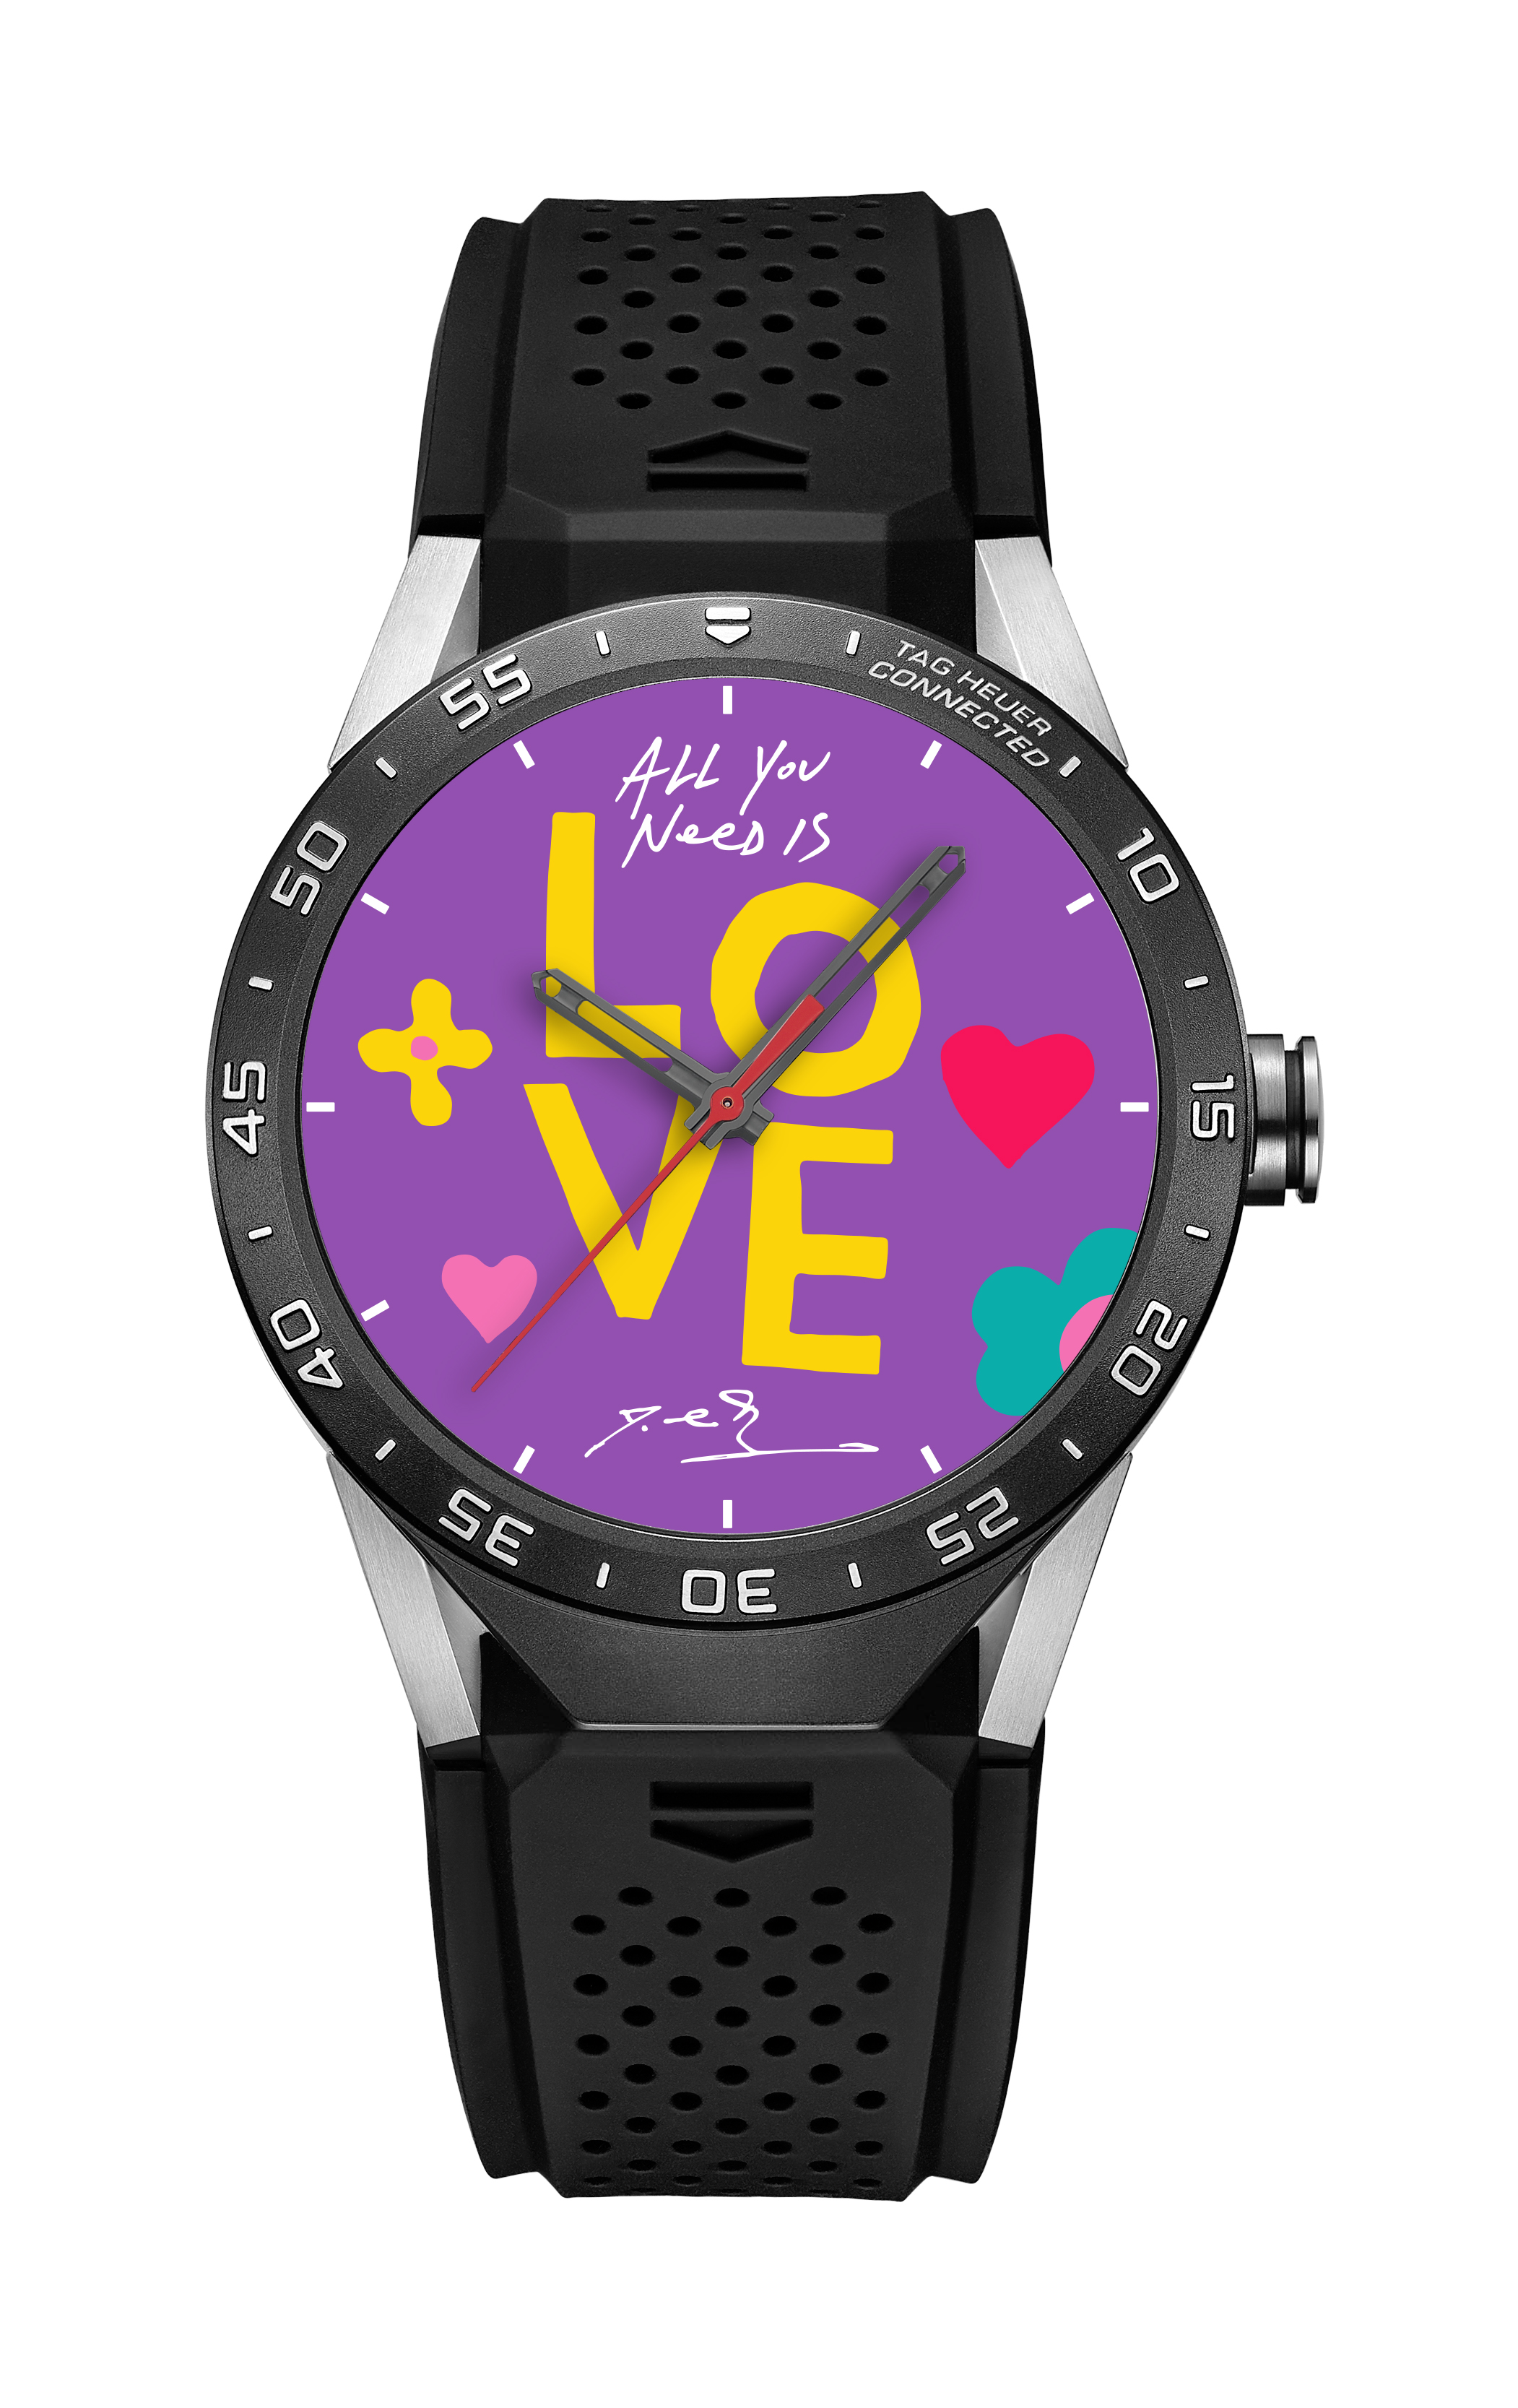 TAG_Heuer_Connected_Watch_Face_Jean-Claude_Biver_1